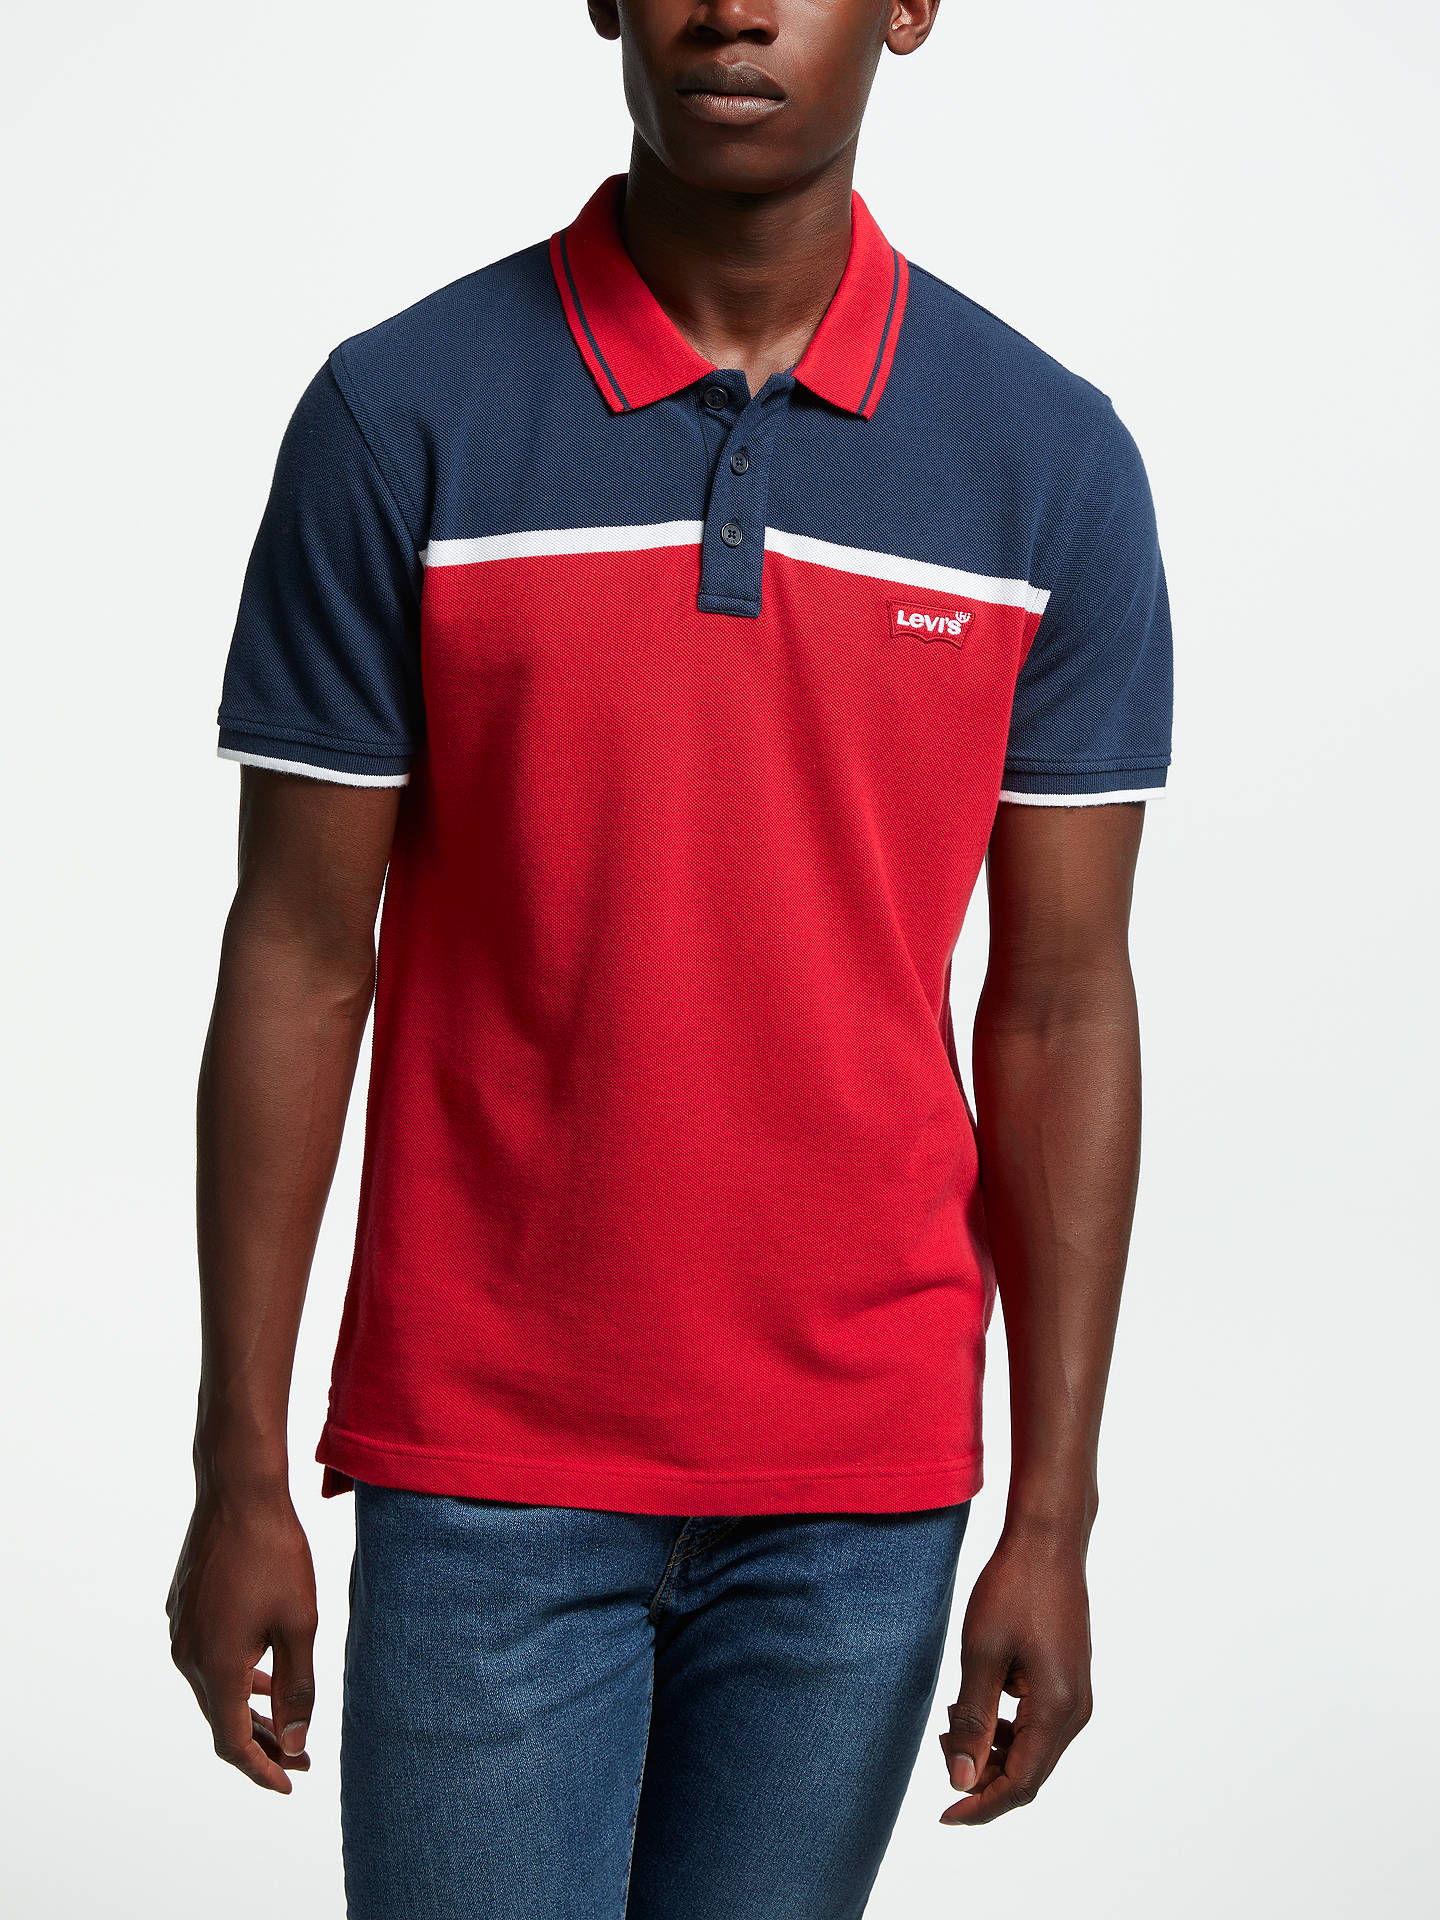 a40c4655b ... new style buylevis colour block polo shirt red blue m online at  johnlewis. d53f6 5698f